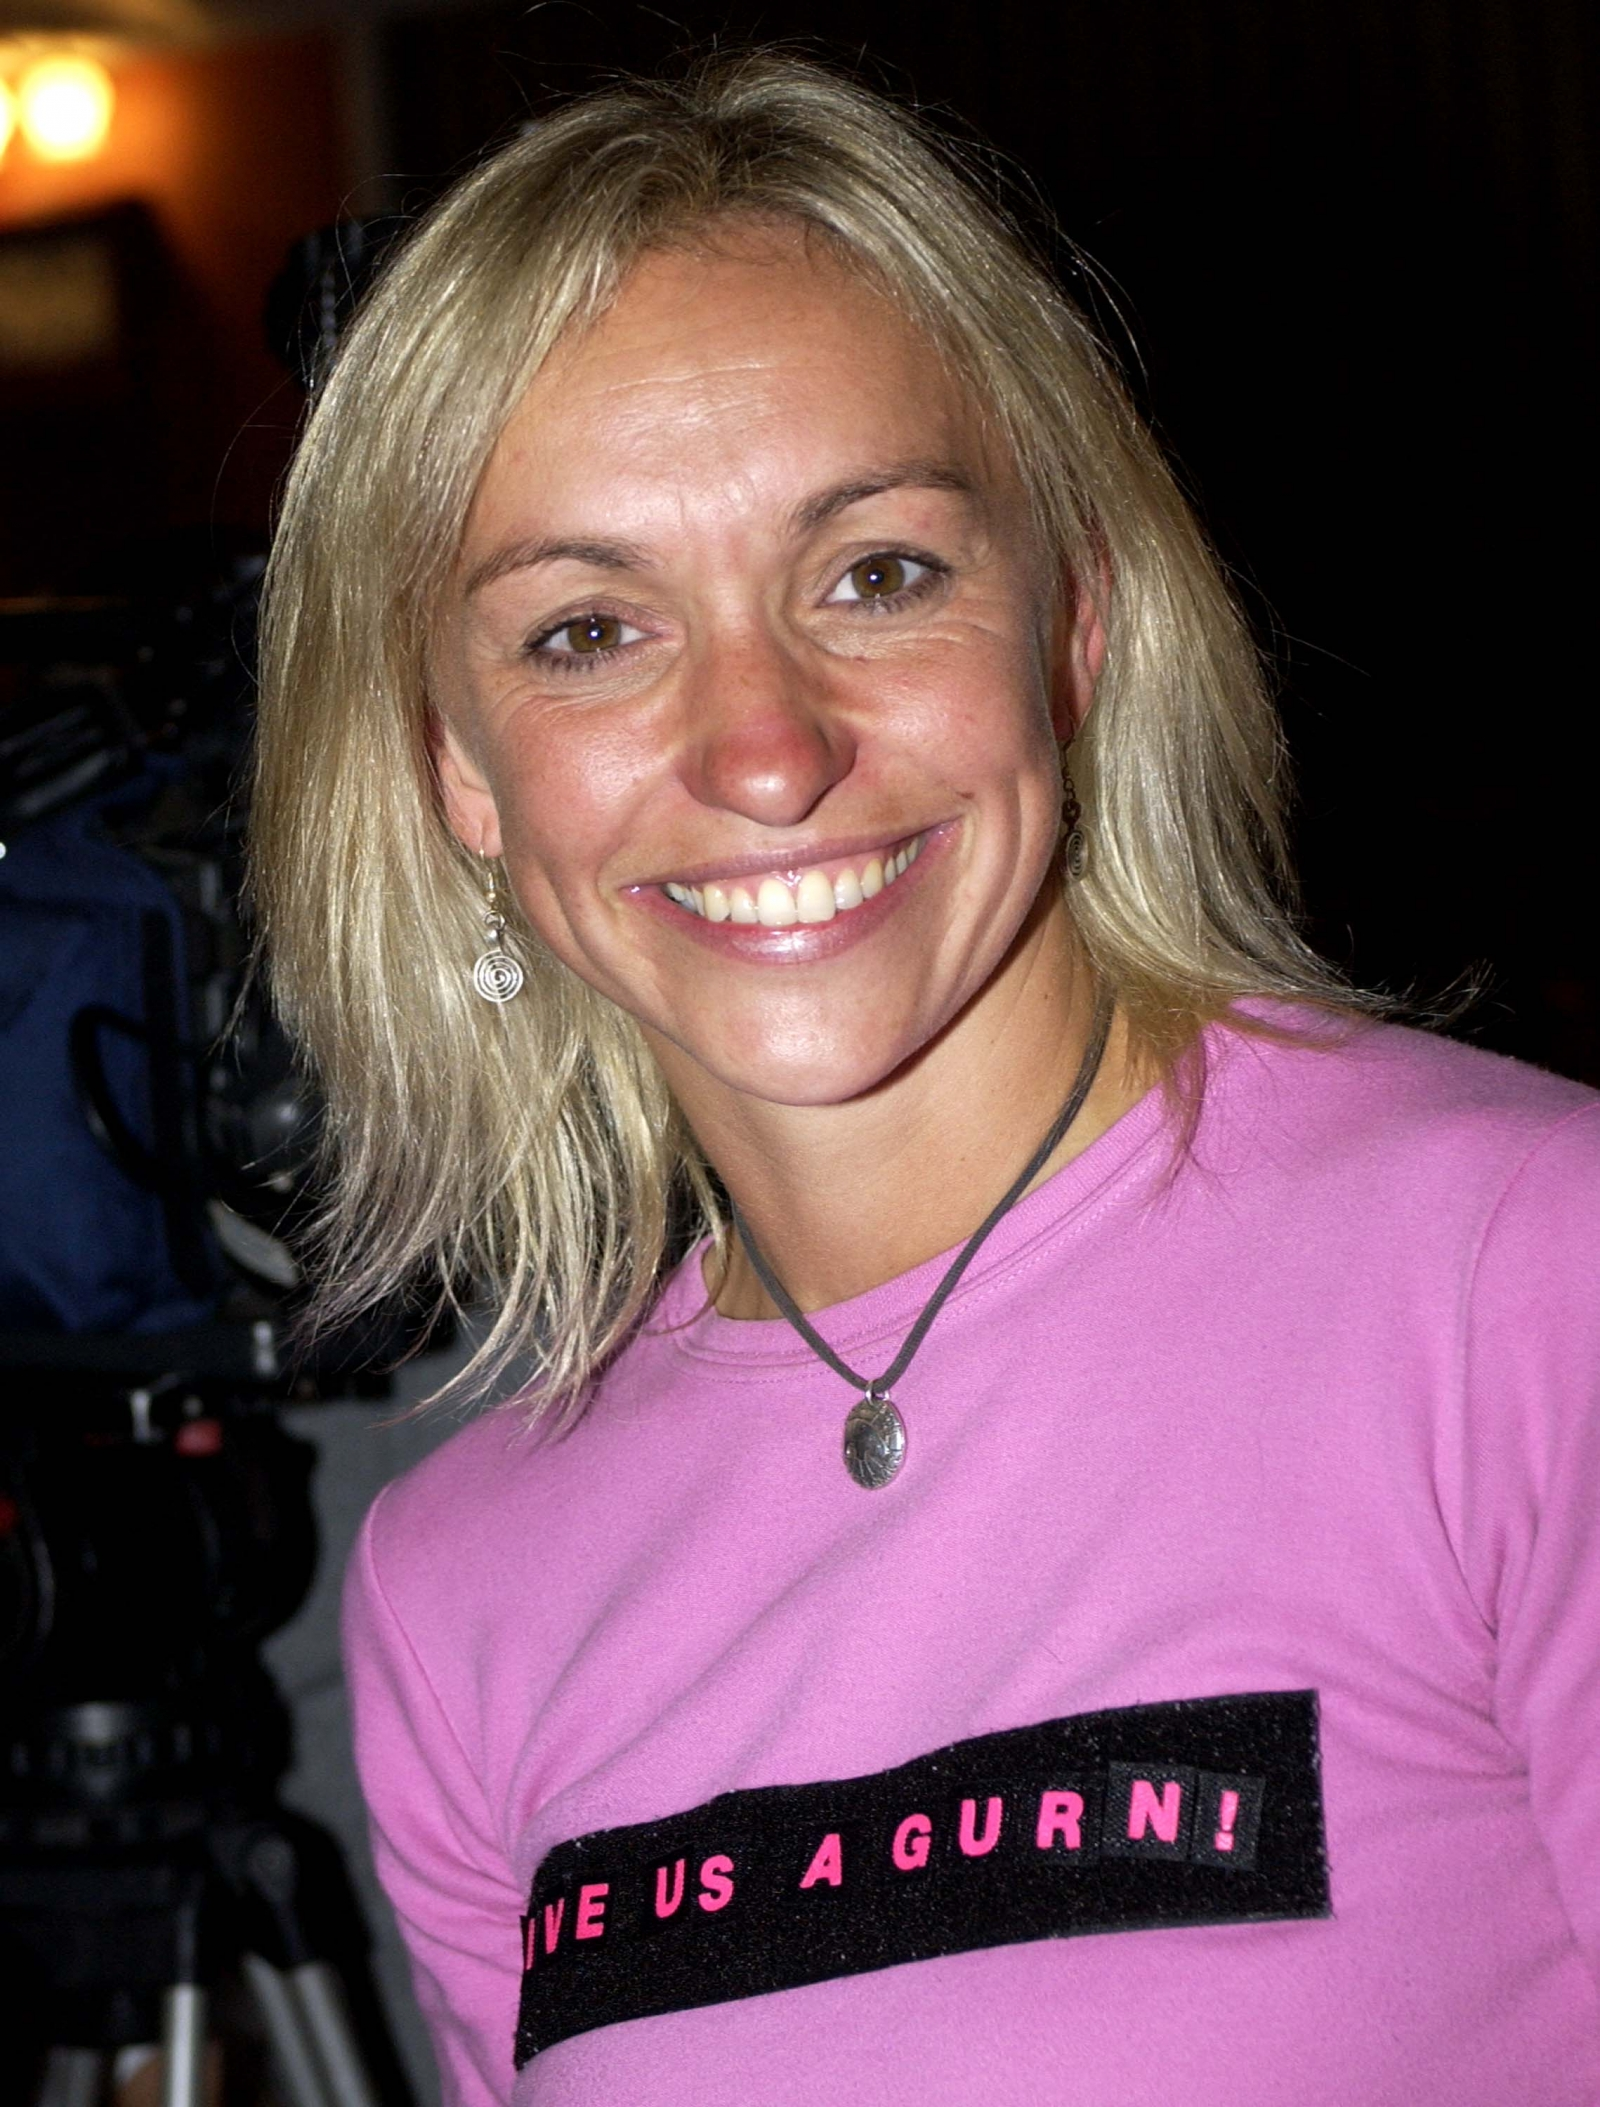 TV presenter Michaela Strachan has undergone a double mastectomy after she was diagnosed with breast cancer